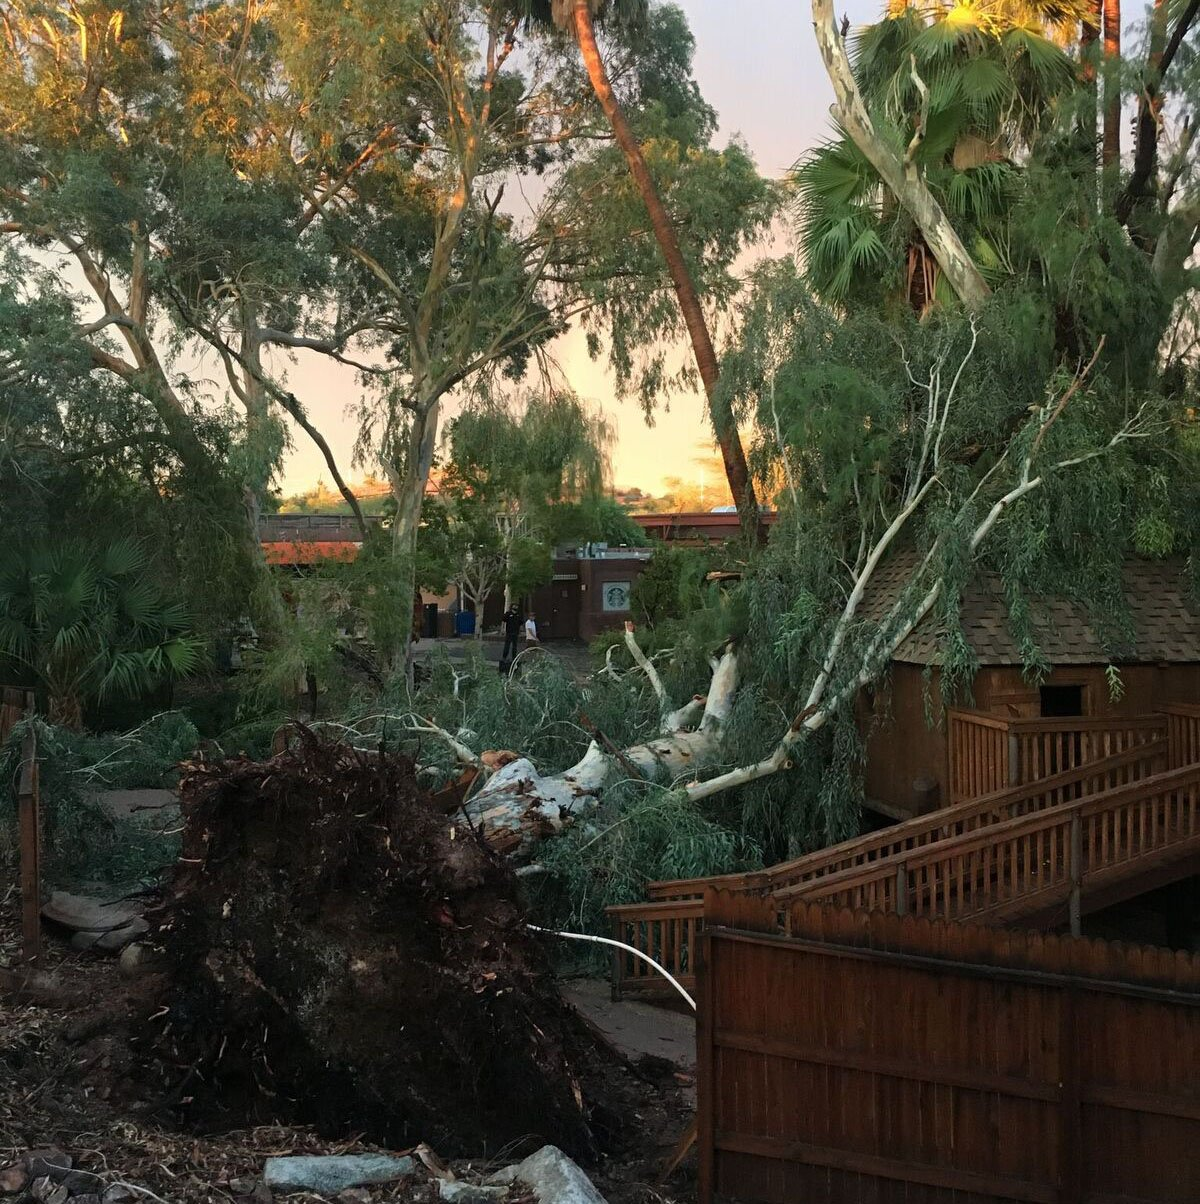 The Phoenix Zoo reported several downed trees, muddy walkways and flooding from the storm. (Source: Phoenix Zoo)